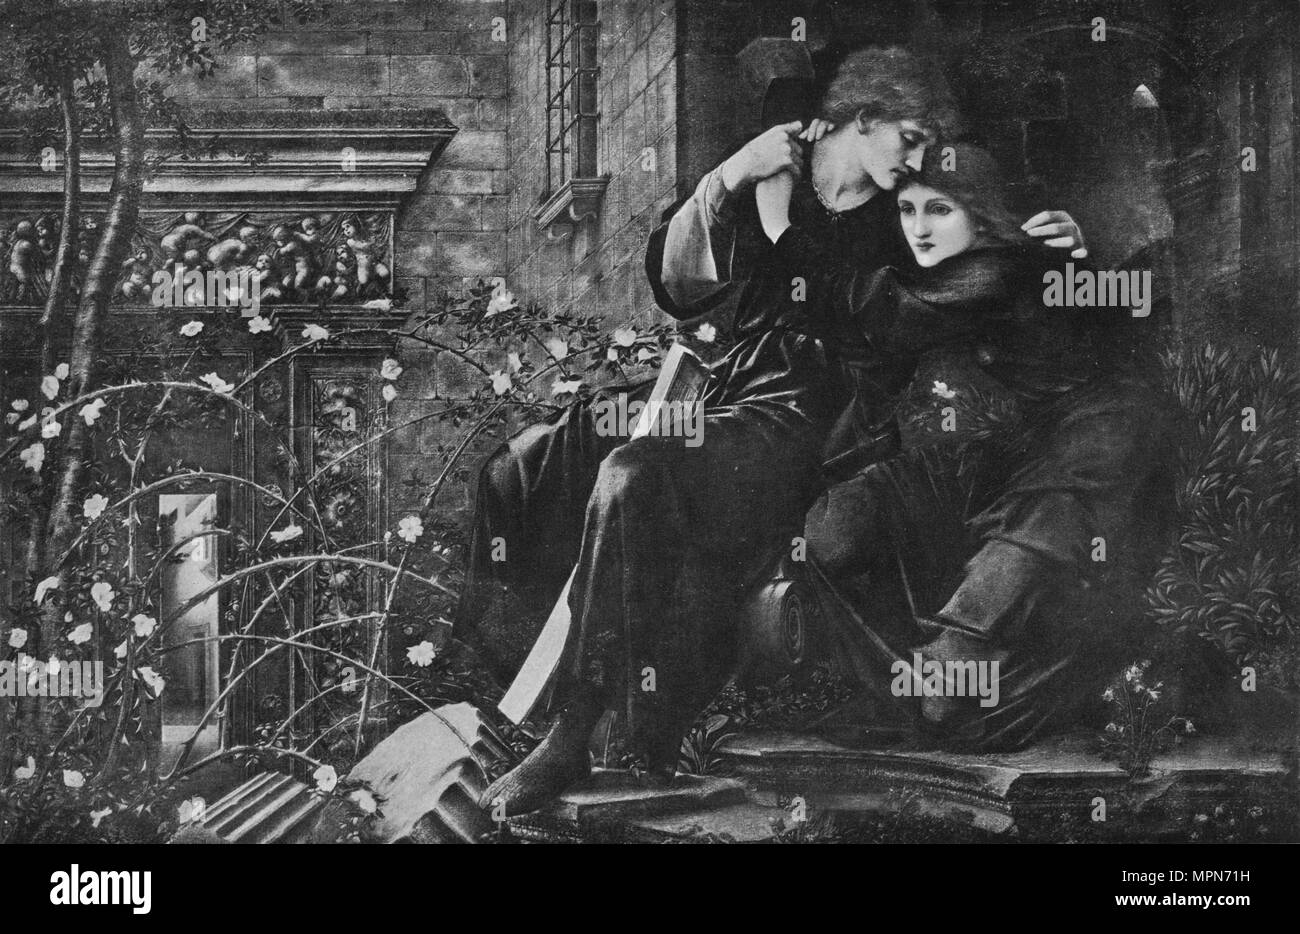 'Love Among The Ruins', 1894, (1911). Artist: Sir Edward Coley Burne-Jones. - Stock Image